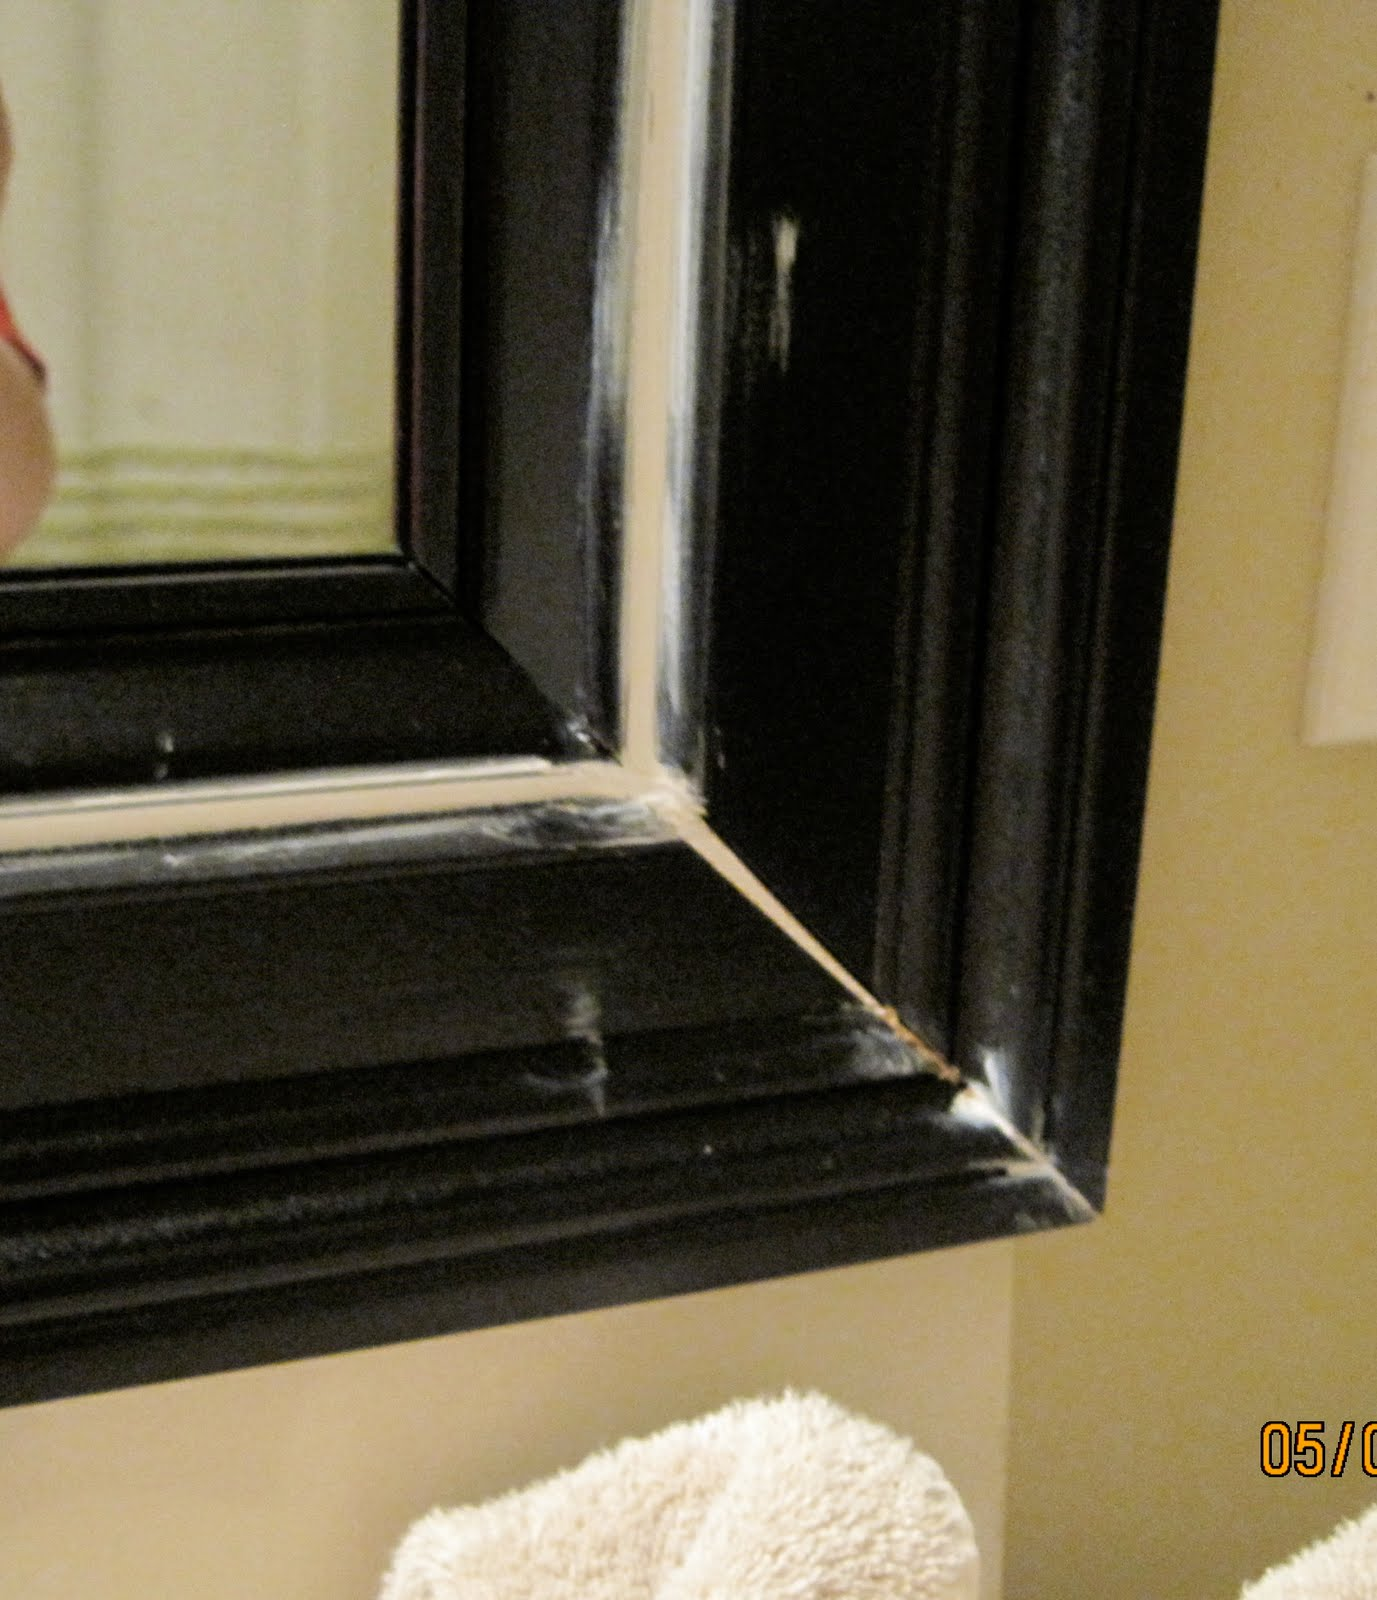 Frame a bathroom mirror with molding - Frame A Bathroom Mirror With Molding 34